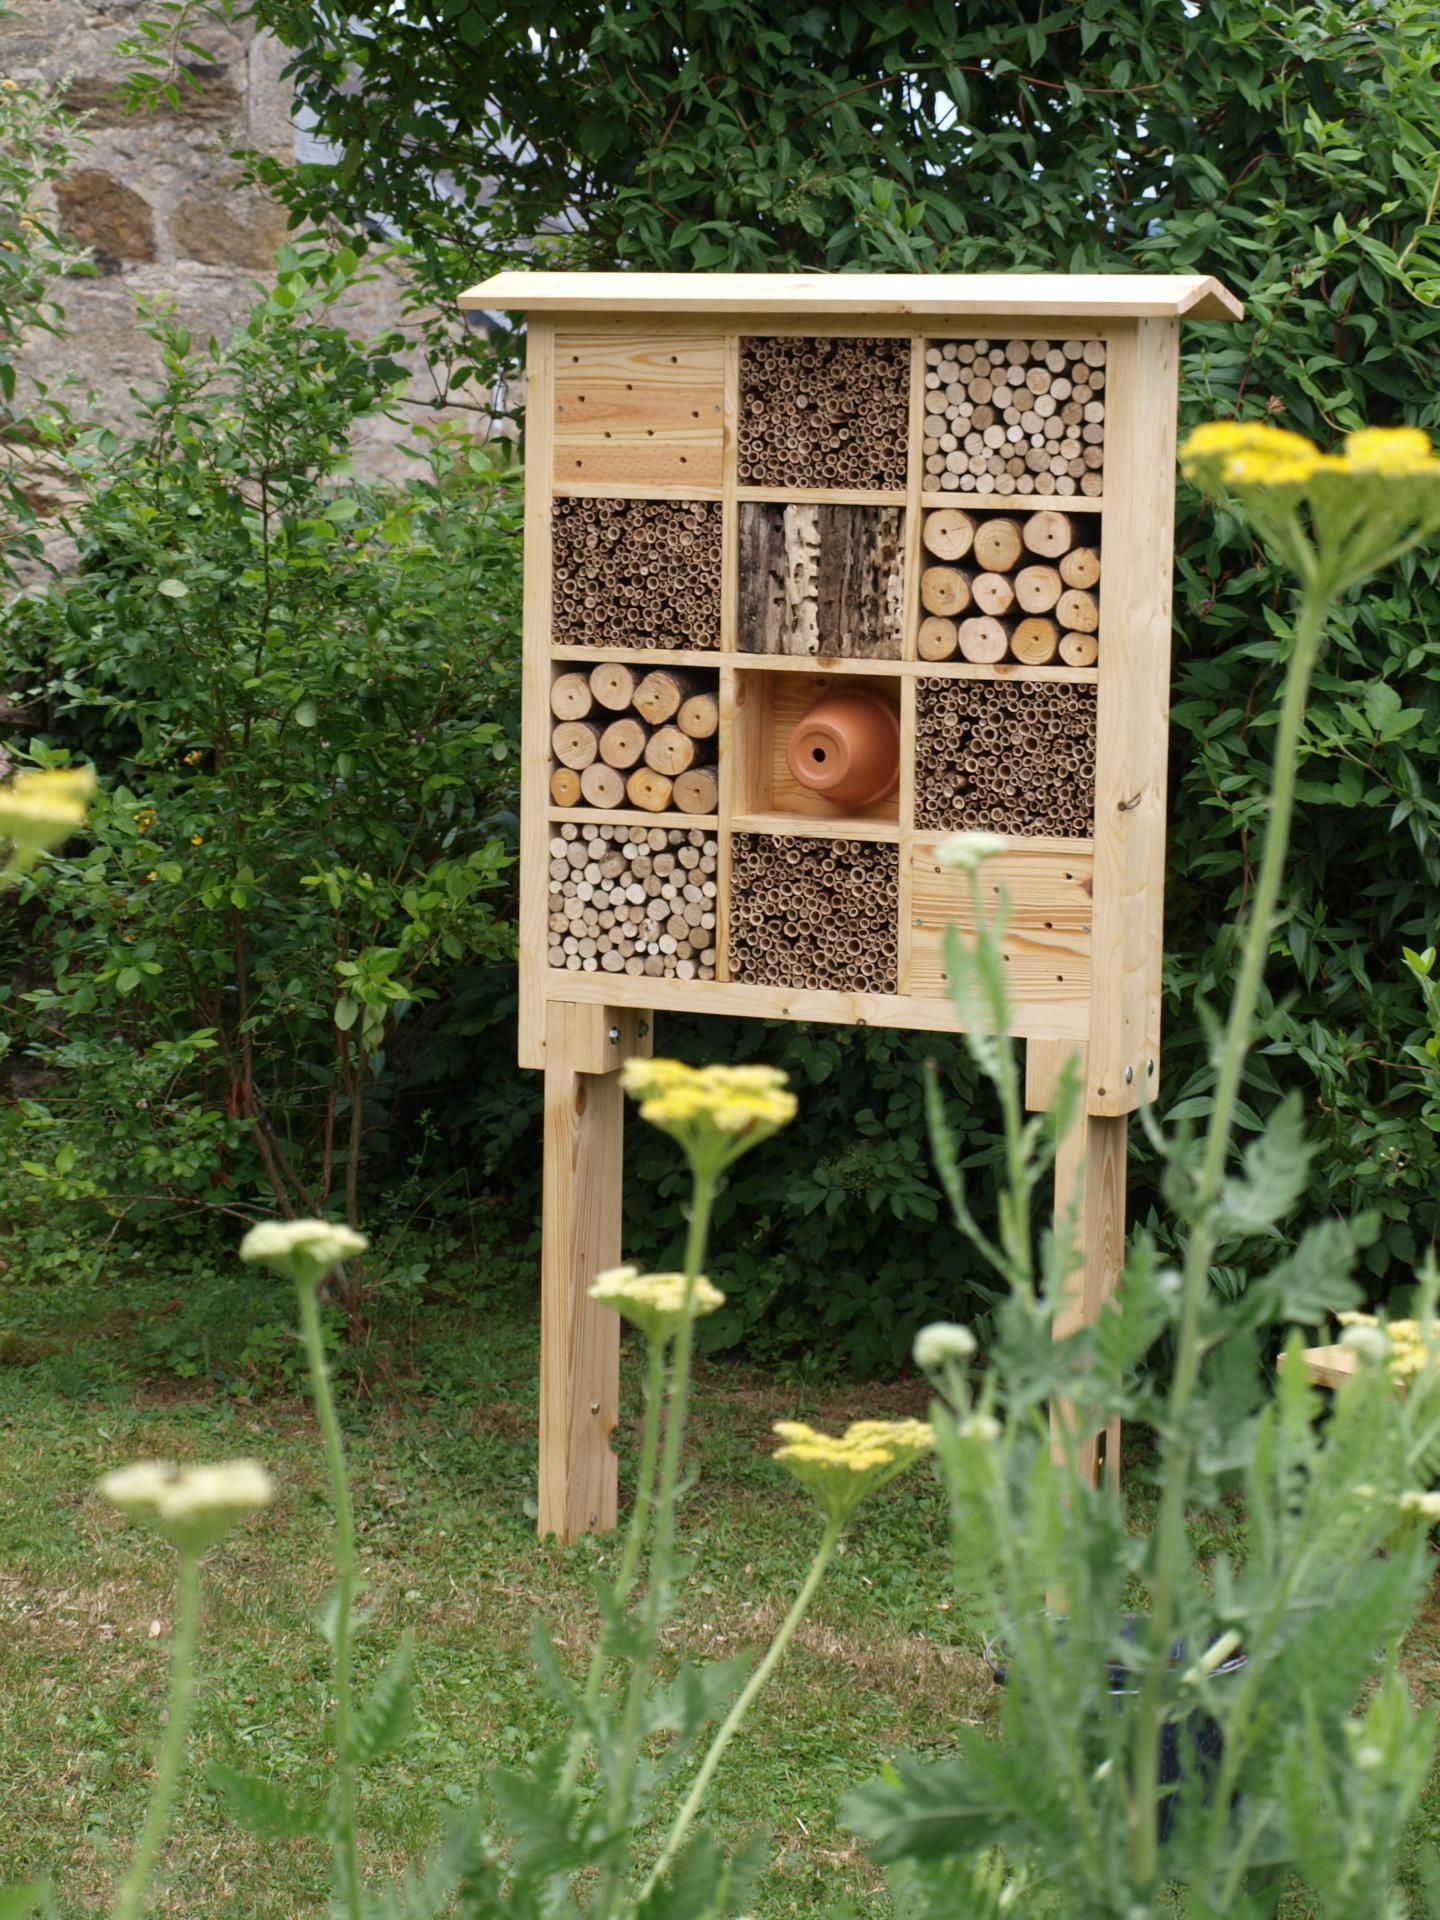 hotel insectes potager pinterest insectes potager et oiseaux. Black Bedroom Furniture Sets. Home Design Ideas